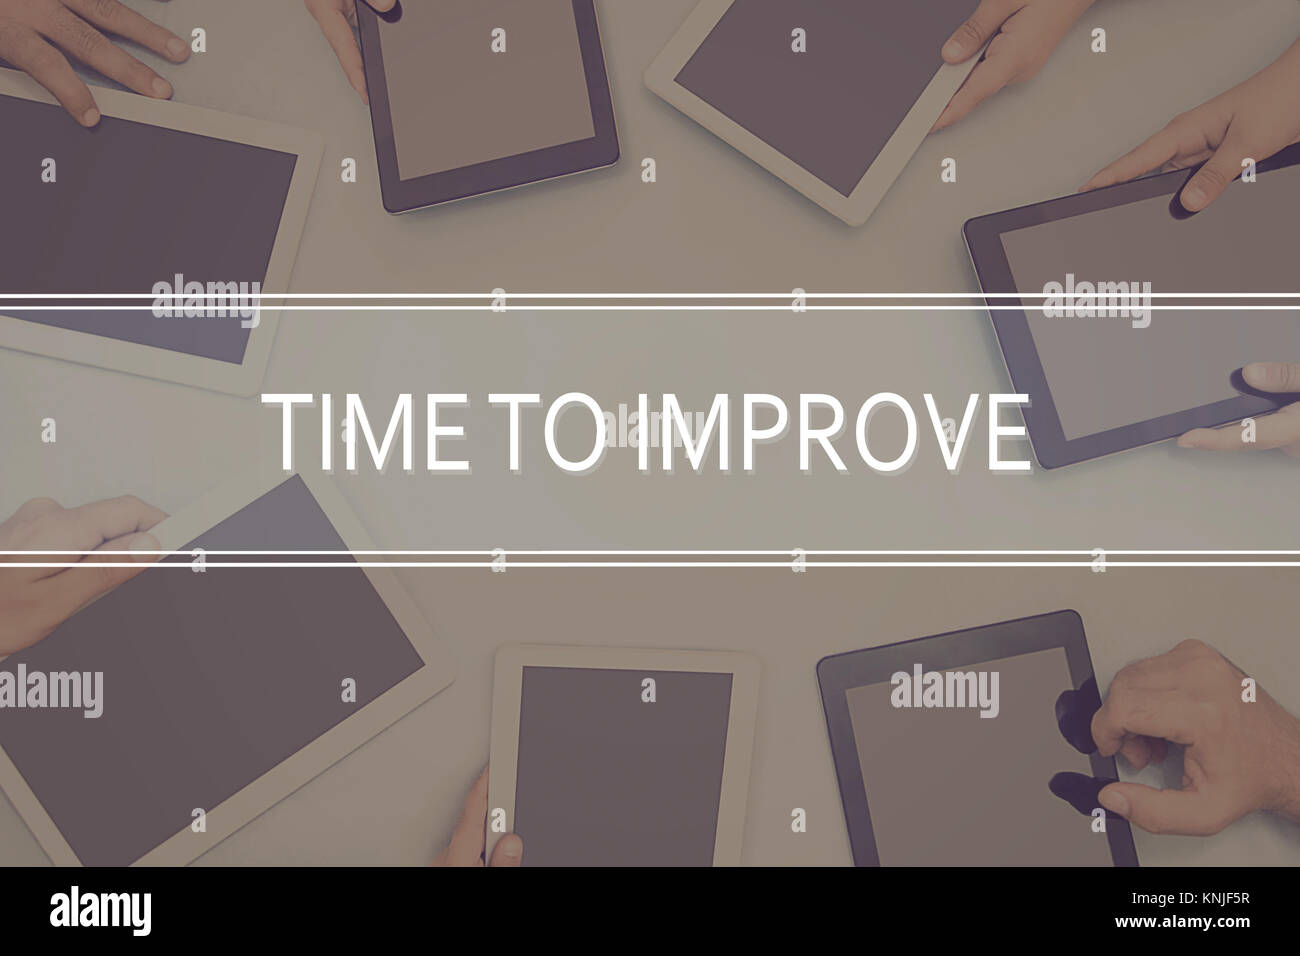 TIME TO IMPROVE CONCEPT Business Concept. - Stock Image